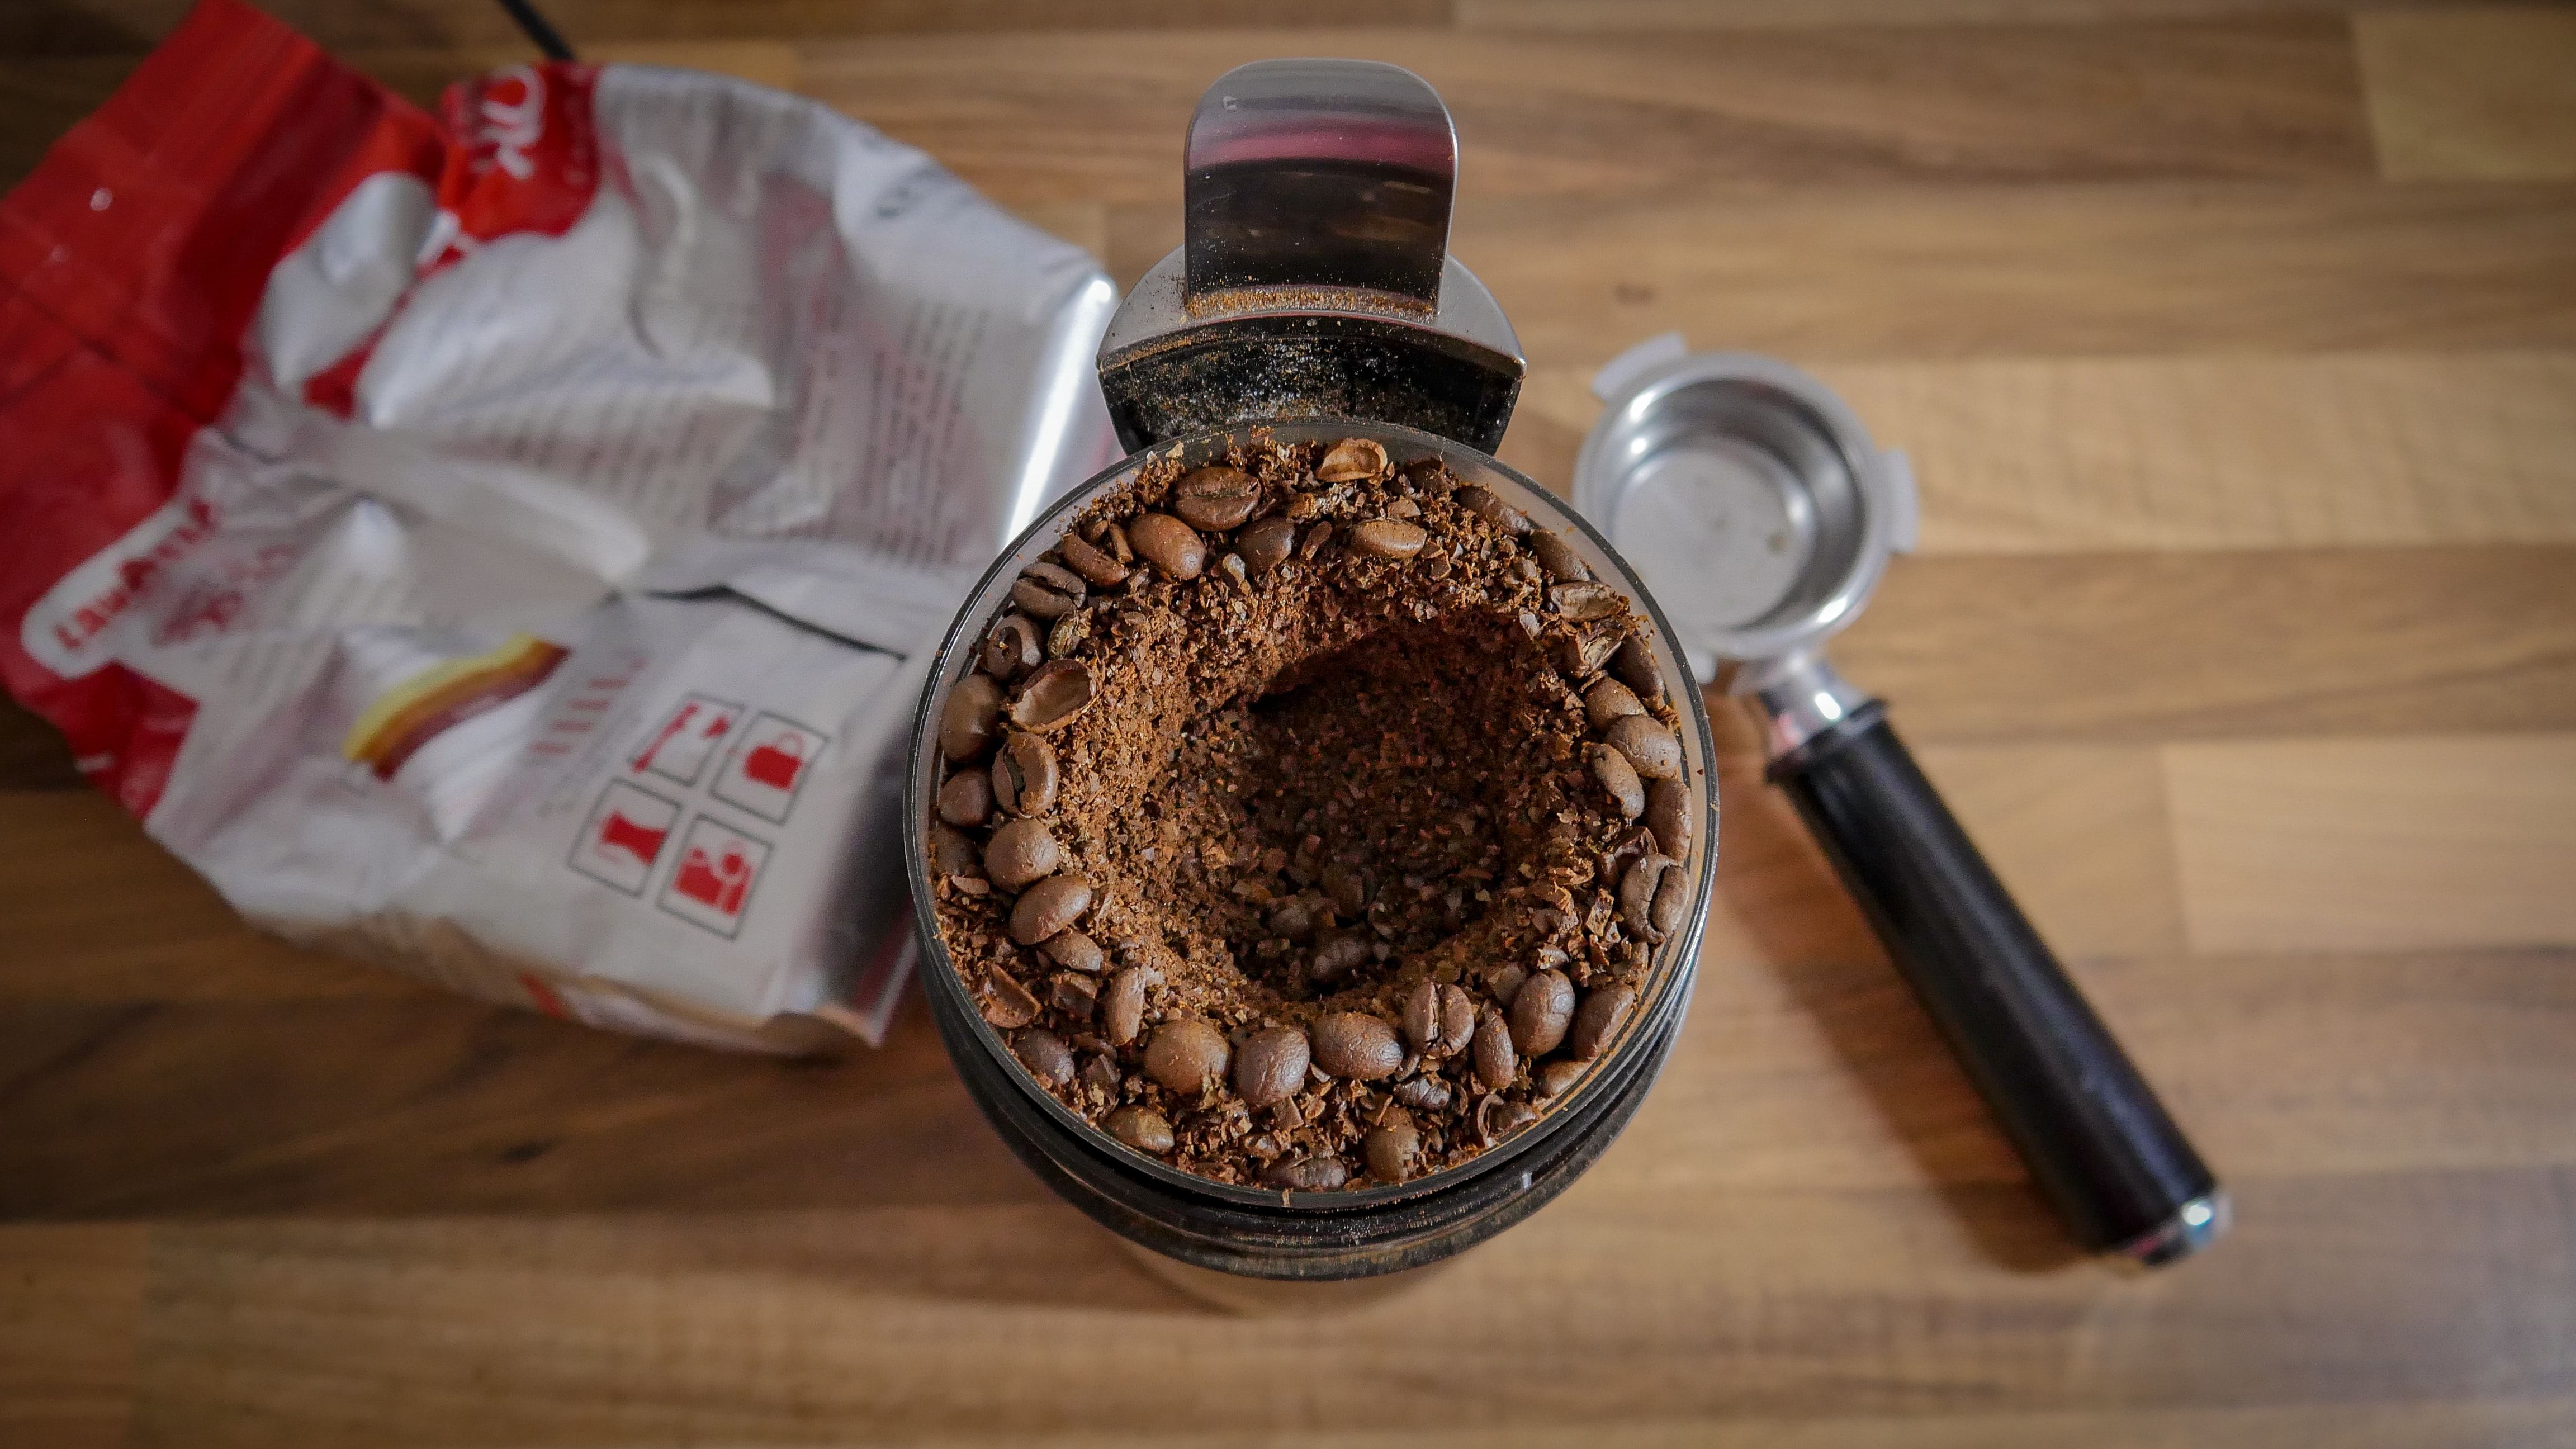 Coffee grinder full of beans and grounds